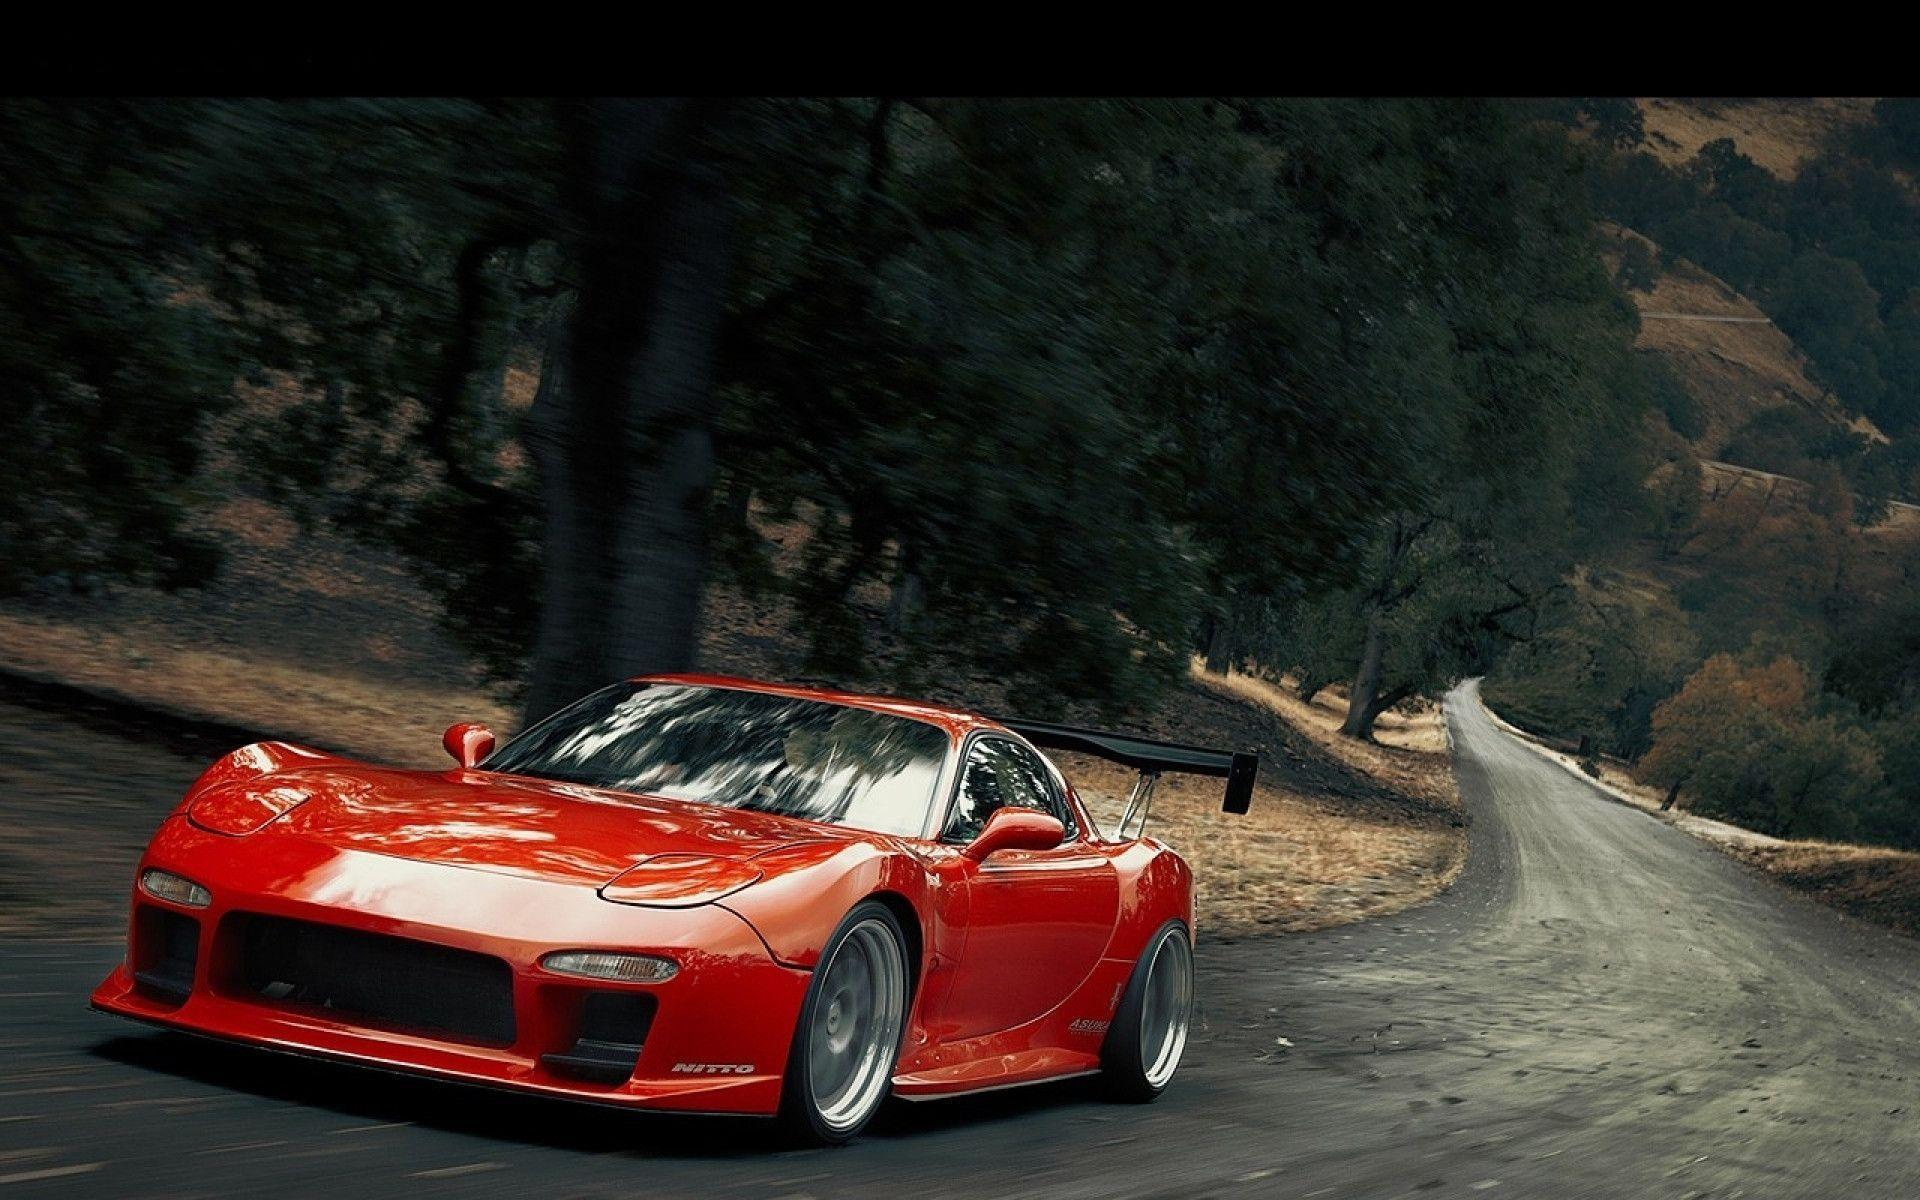 Mazda Rx7 Veilside For Sale >> Mazda RX-7 Wallpapers - Wallpaper Cave